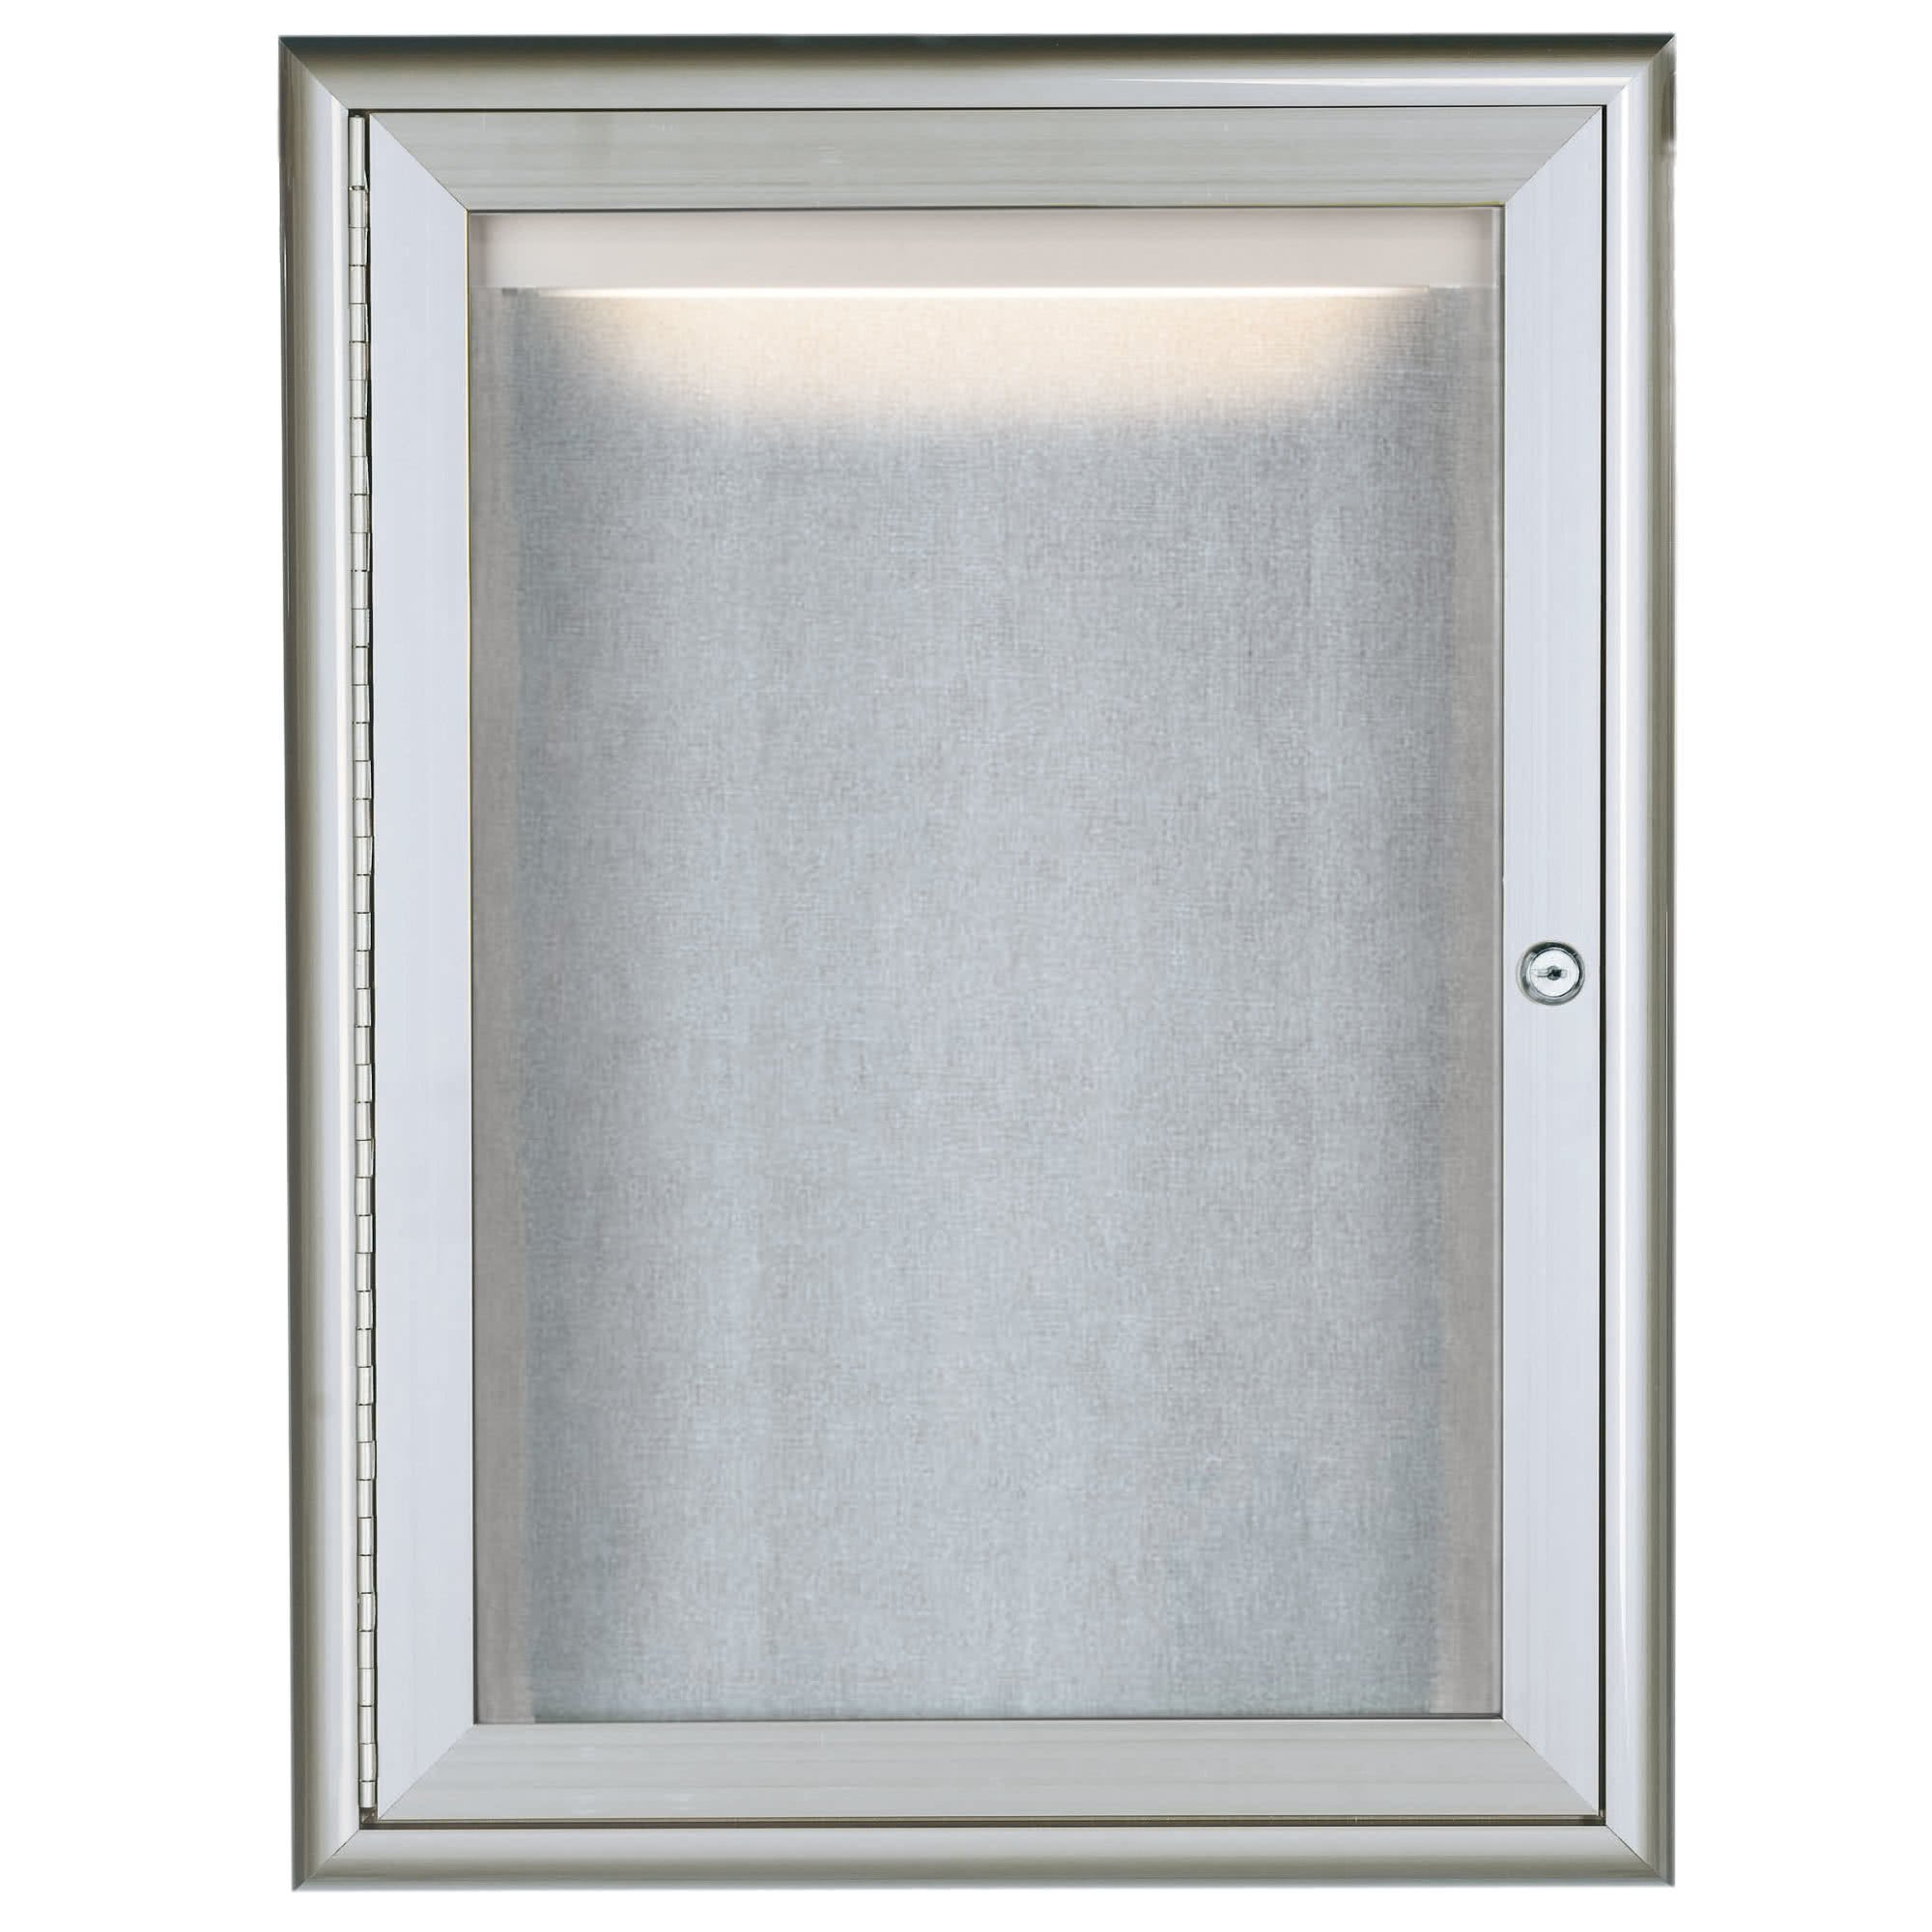 TableTop King LOWFC2418 24'' x 18'' Silver Enclosed Aluminum Indoor / Outdoor Bulletin Board with Waterfall Style Frame and LED Lighting